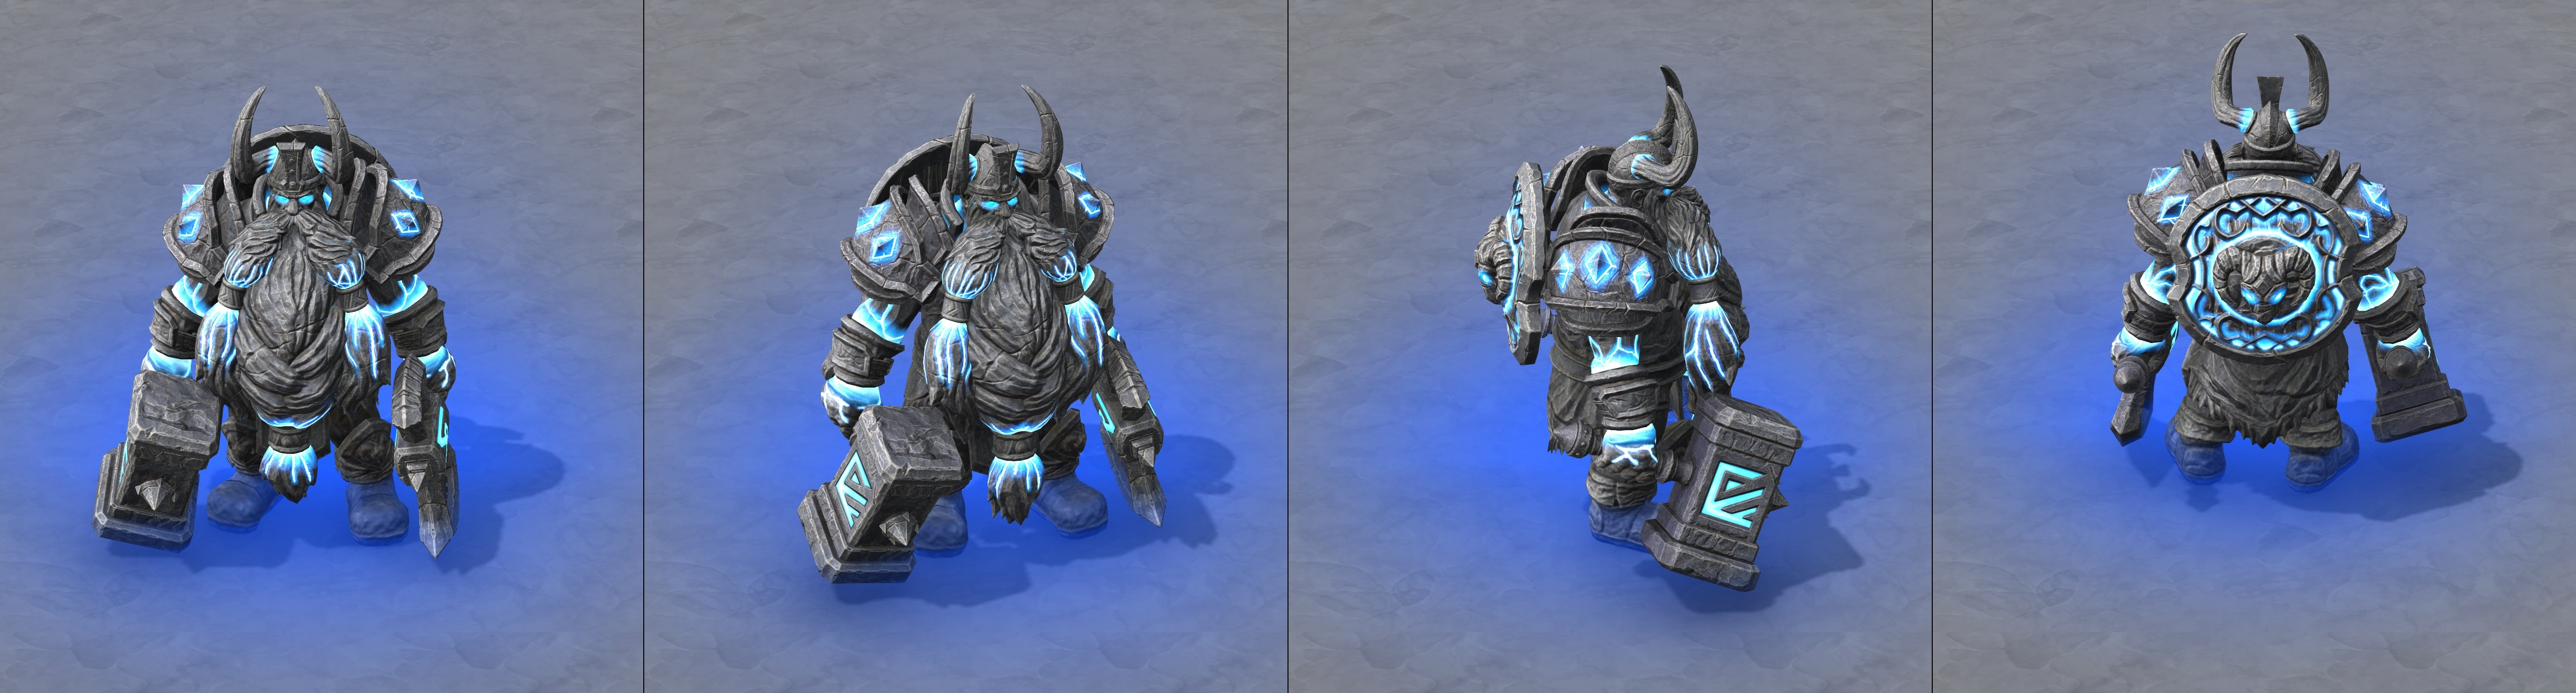 Warcraft Iii Reforged Alliance Character Models Muradin Avatar